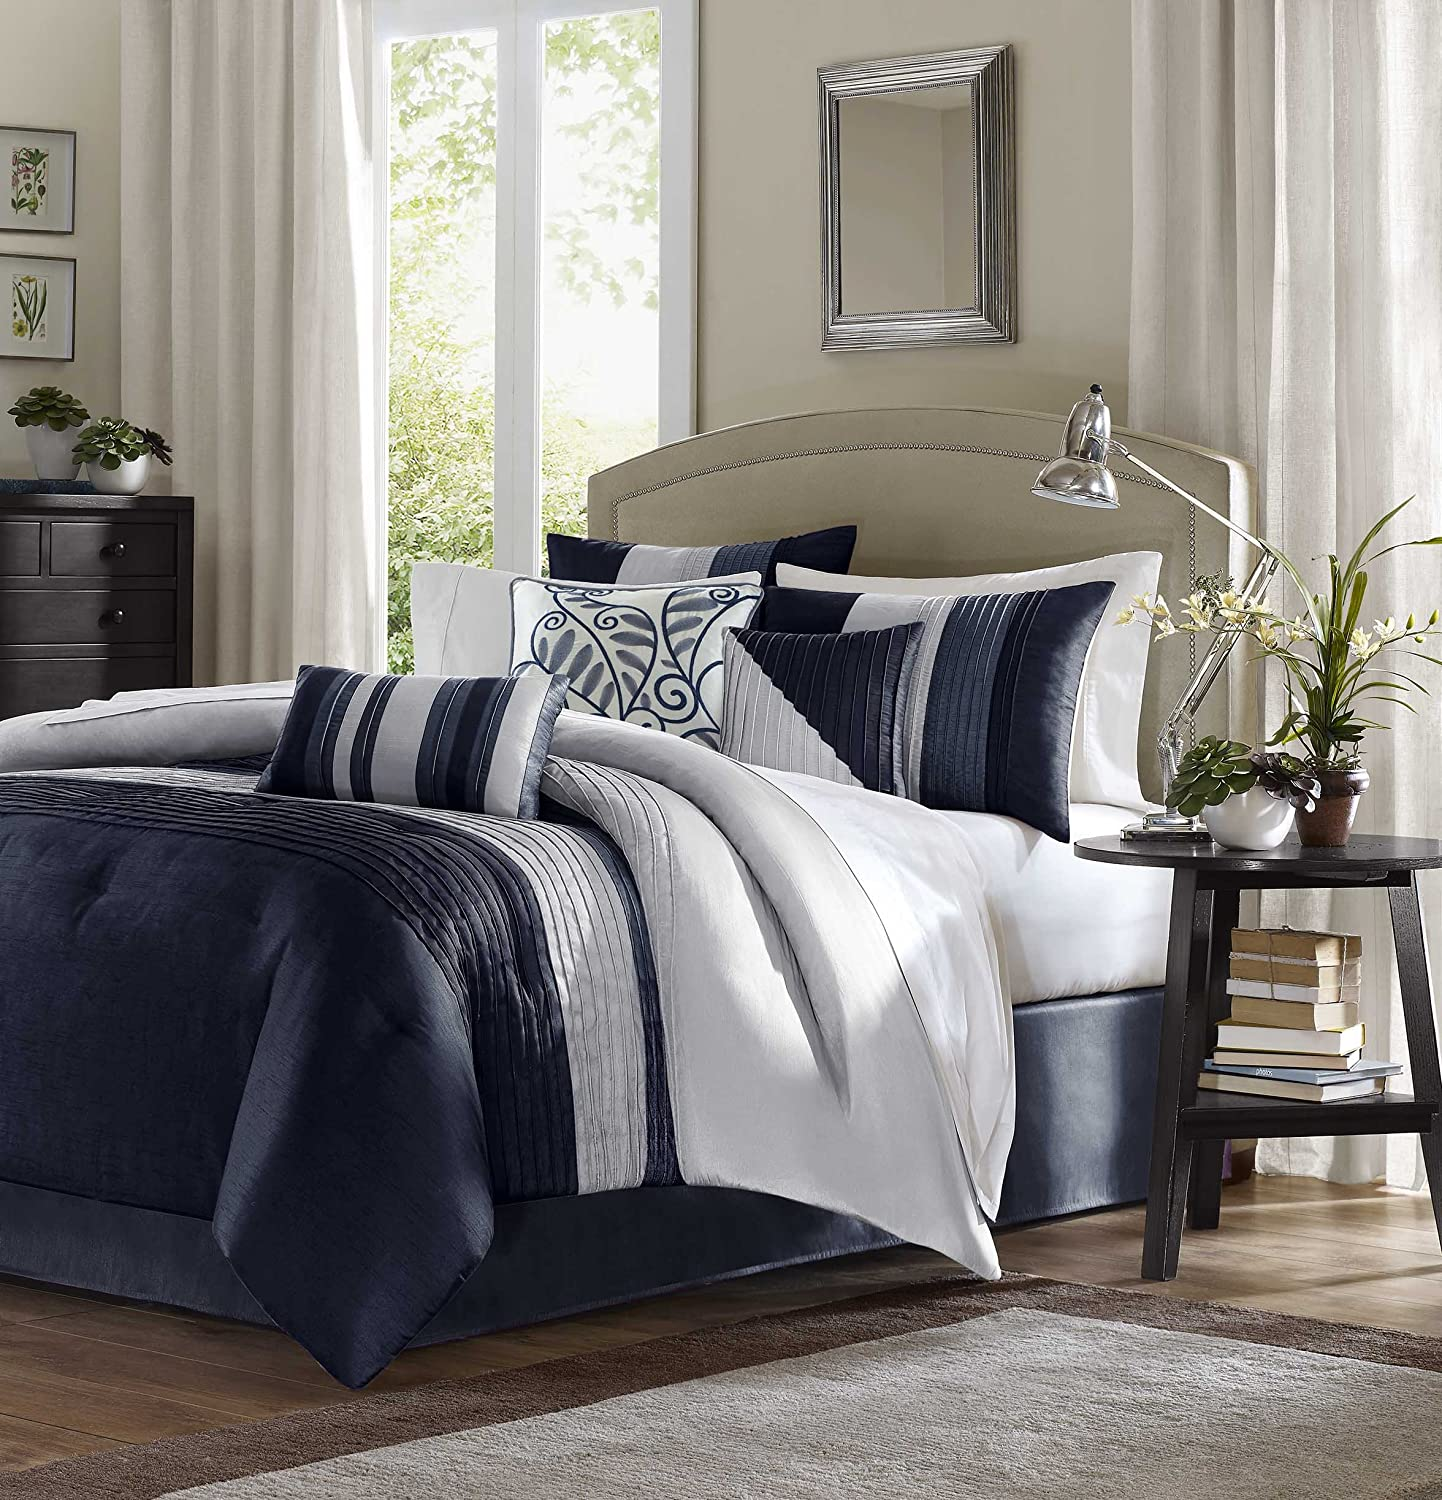 Madison Park Amherst Comforter Set, Queen, Navy